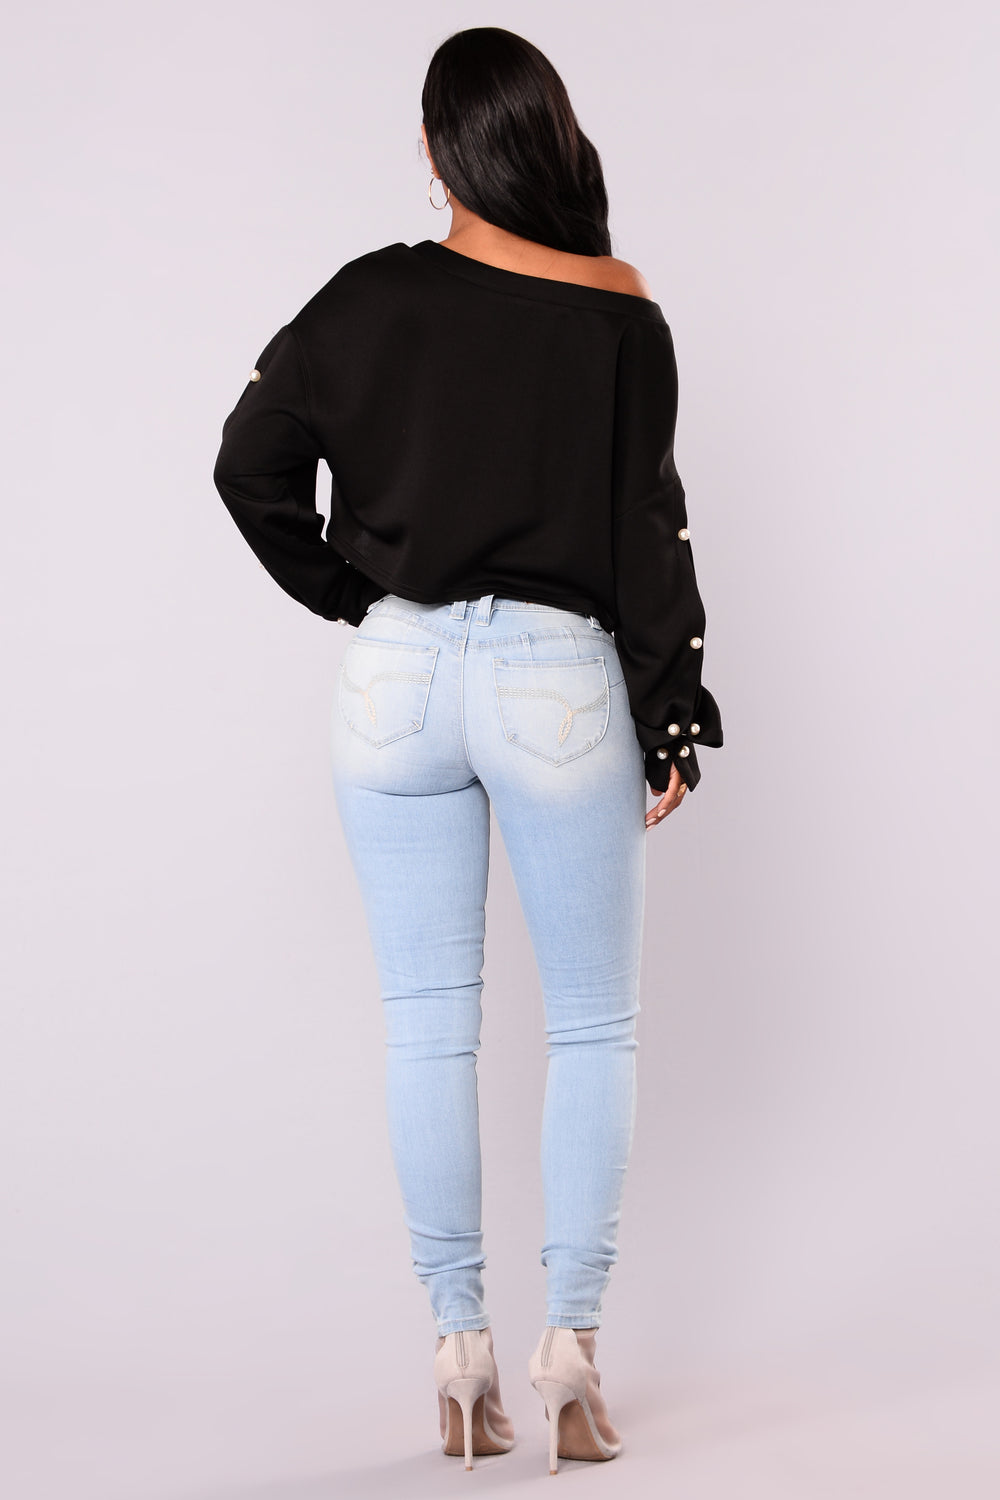 Round Of Applause Booty Lifting Jeans - Light Blue Wash